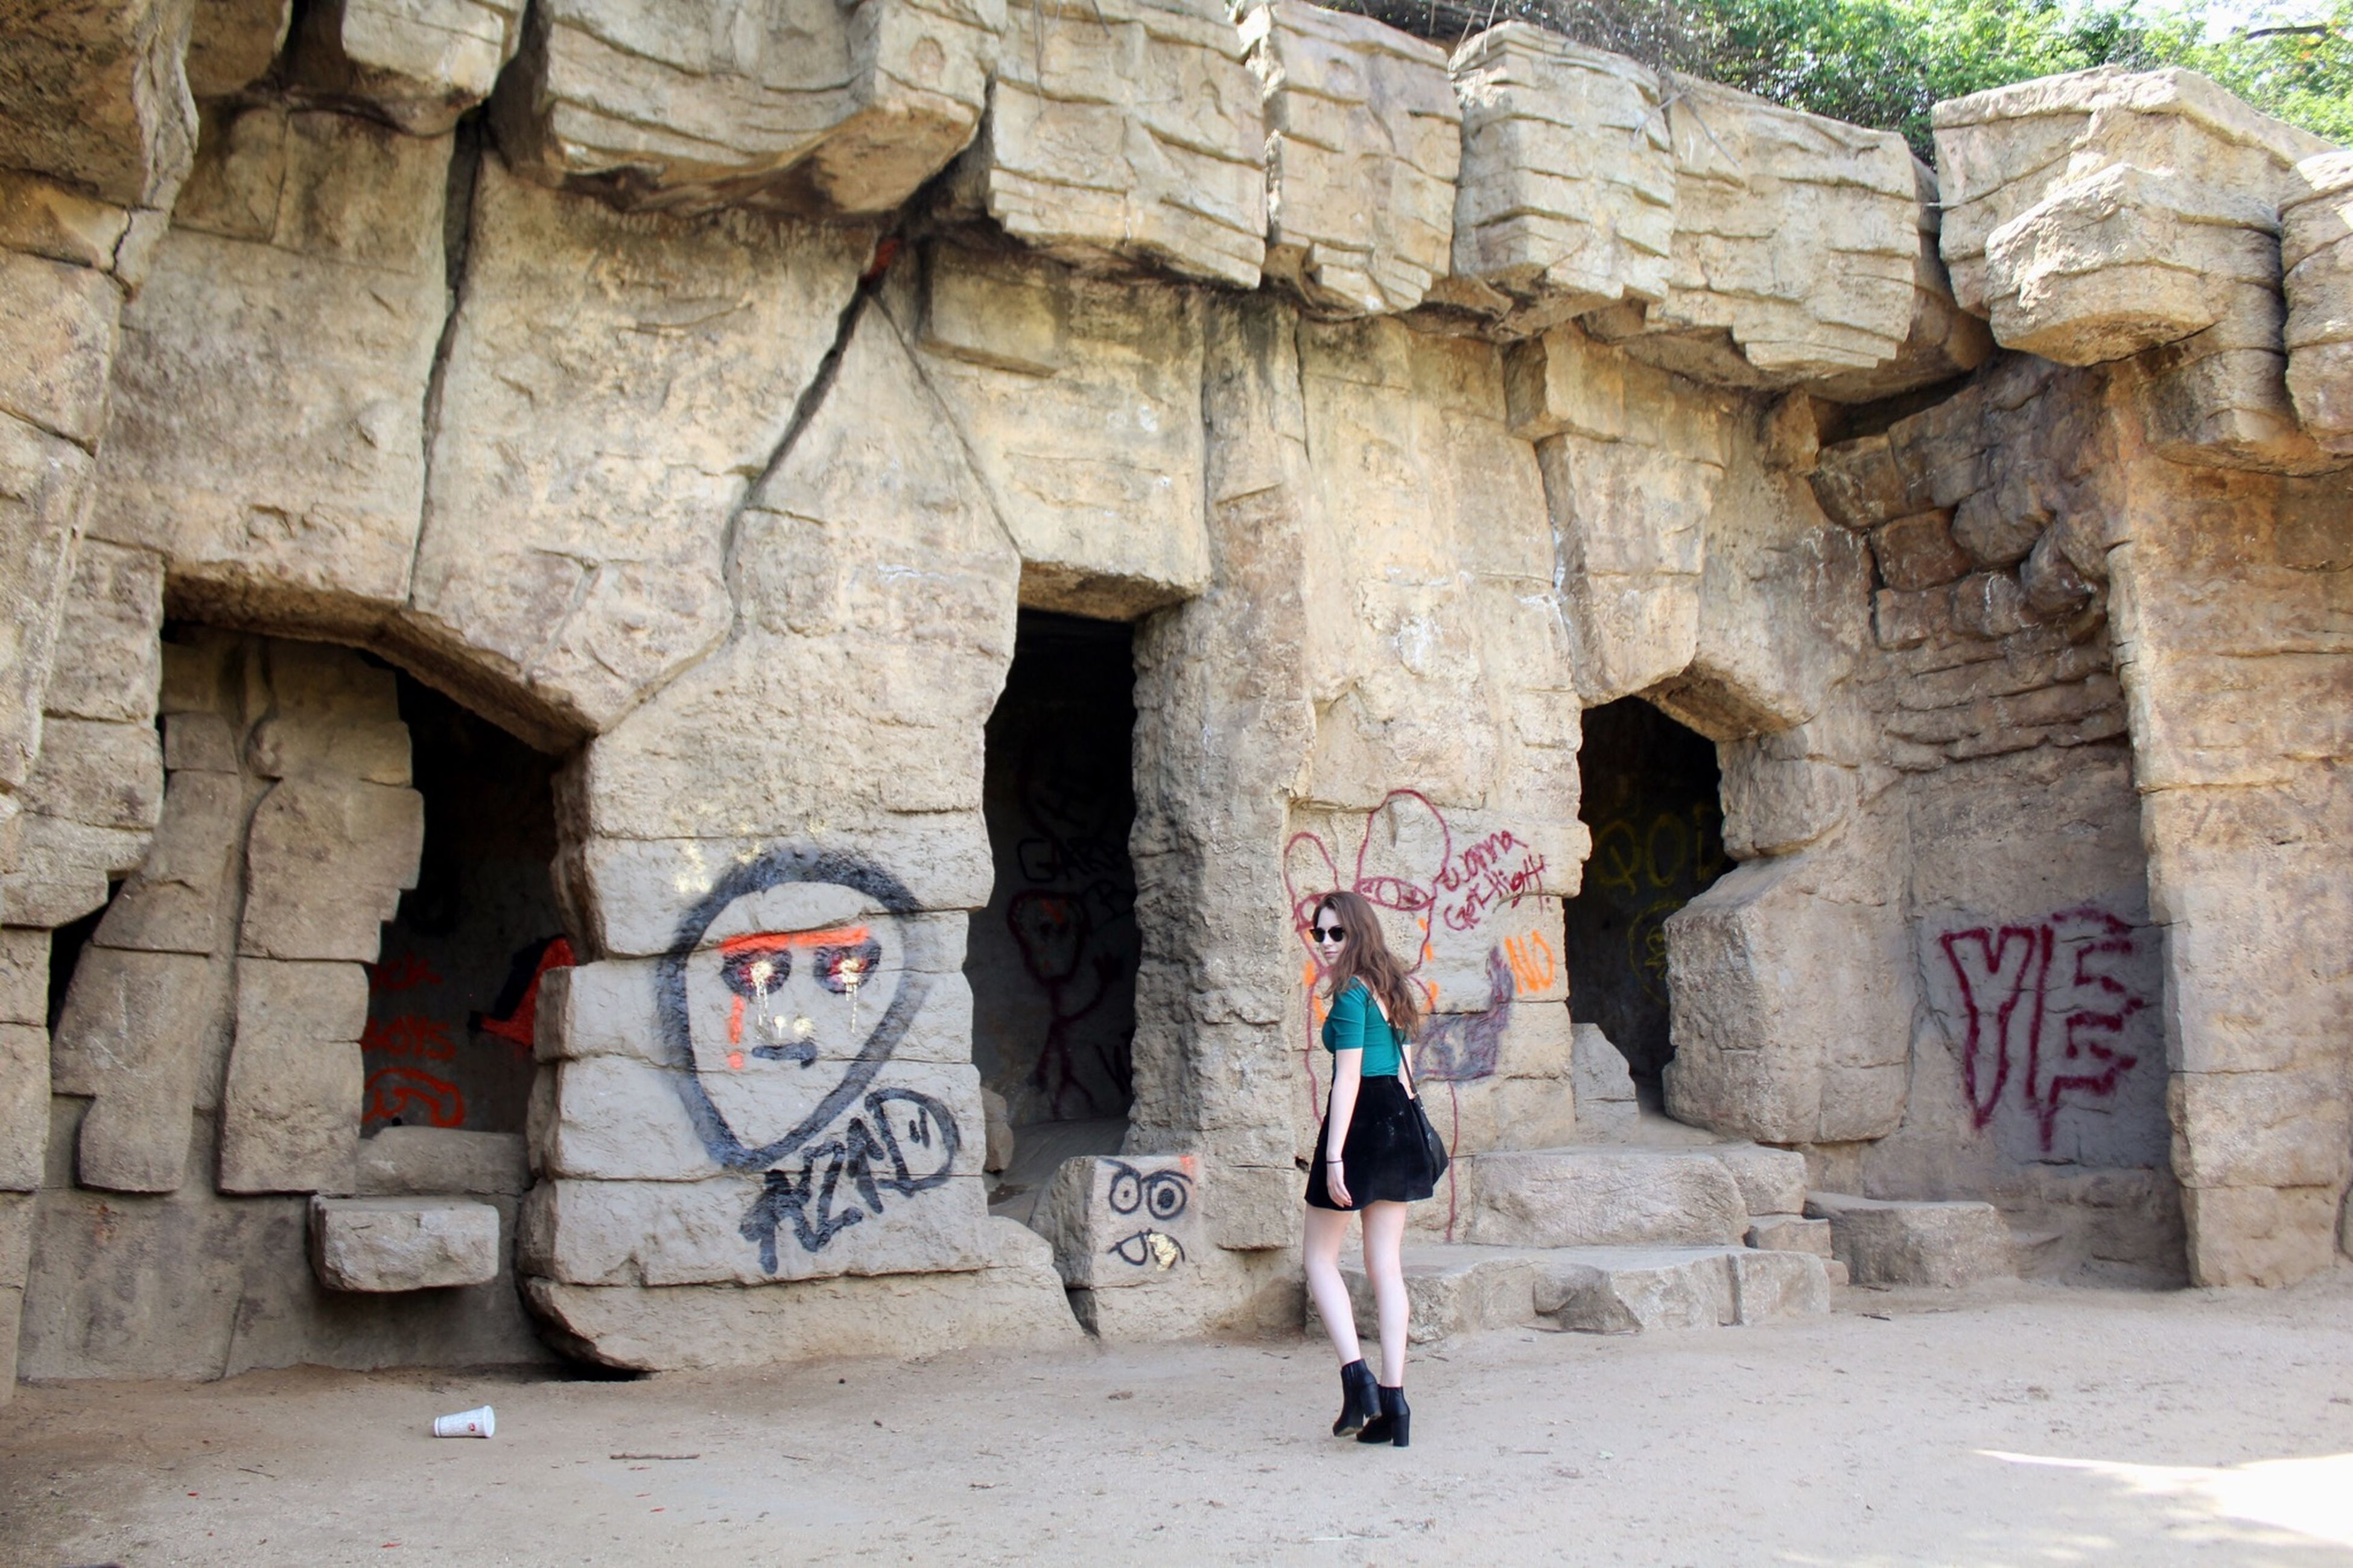 architecture, built structure, graffiti, full length, lifestyles, building exterior, people, wall - building feature, leisure activity, casual clothing, rear view, art, art and craft, walking, wall, text